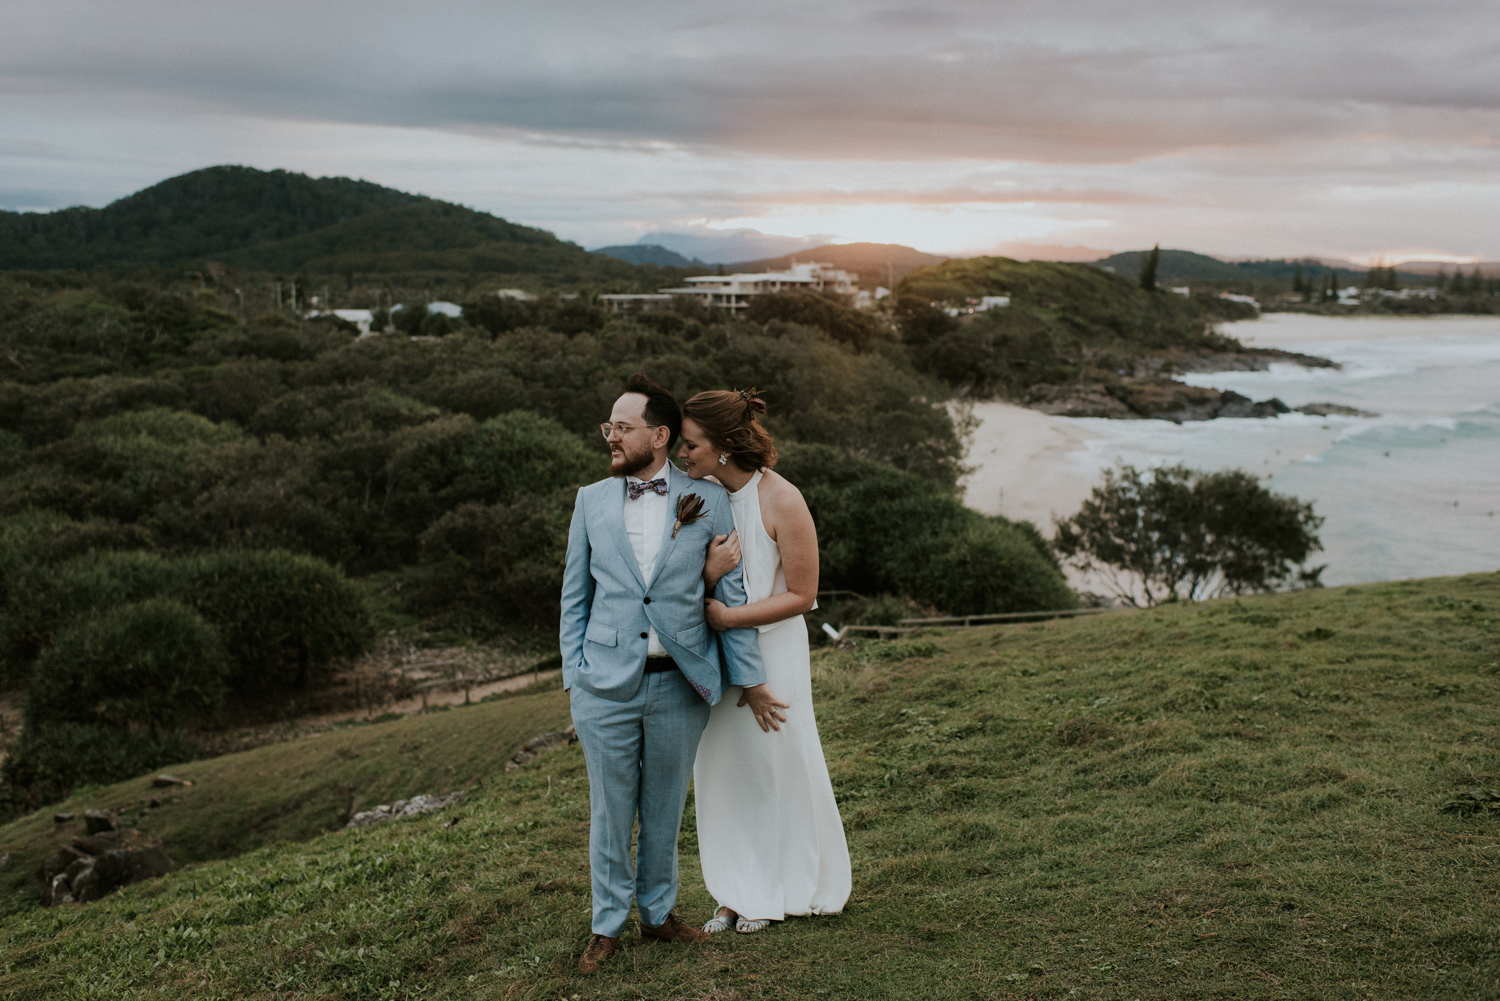 Brisbane Wedding Photographer | Tweed Coast Elopement Photography-71.jpg